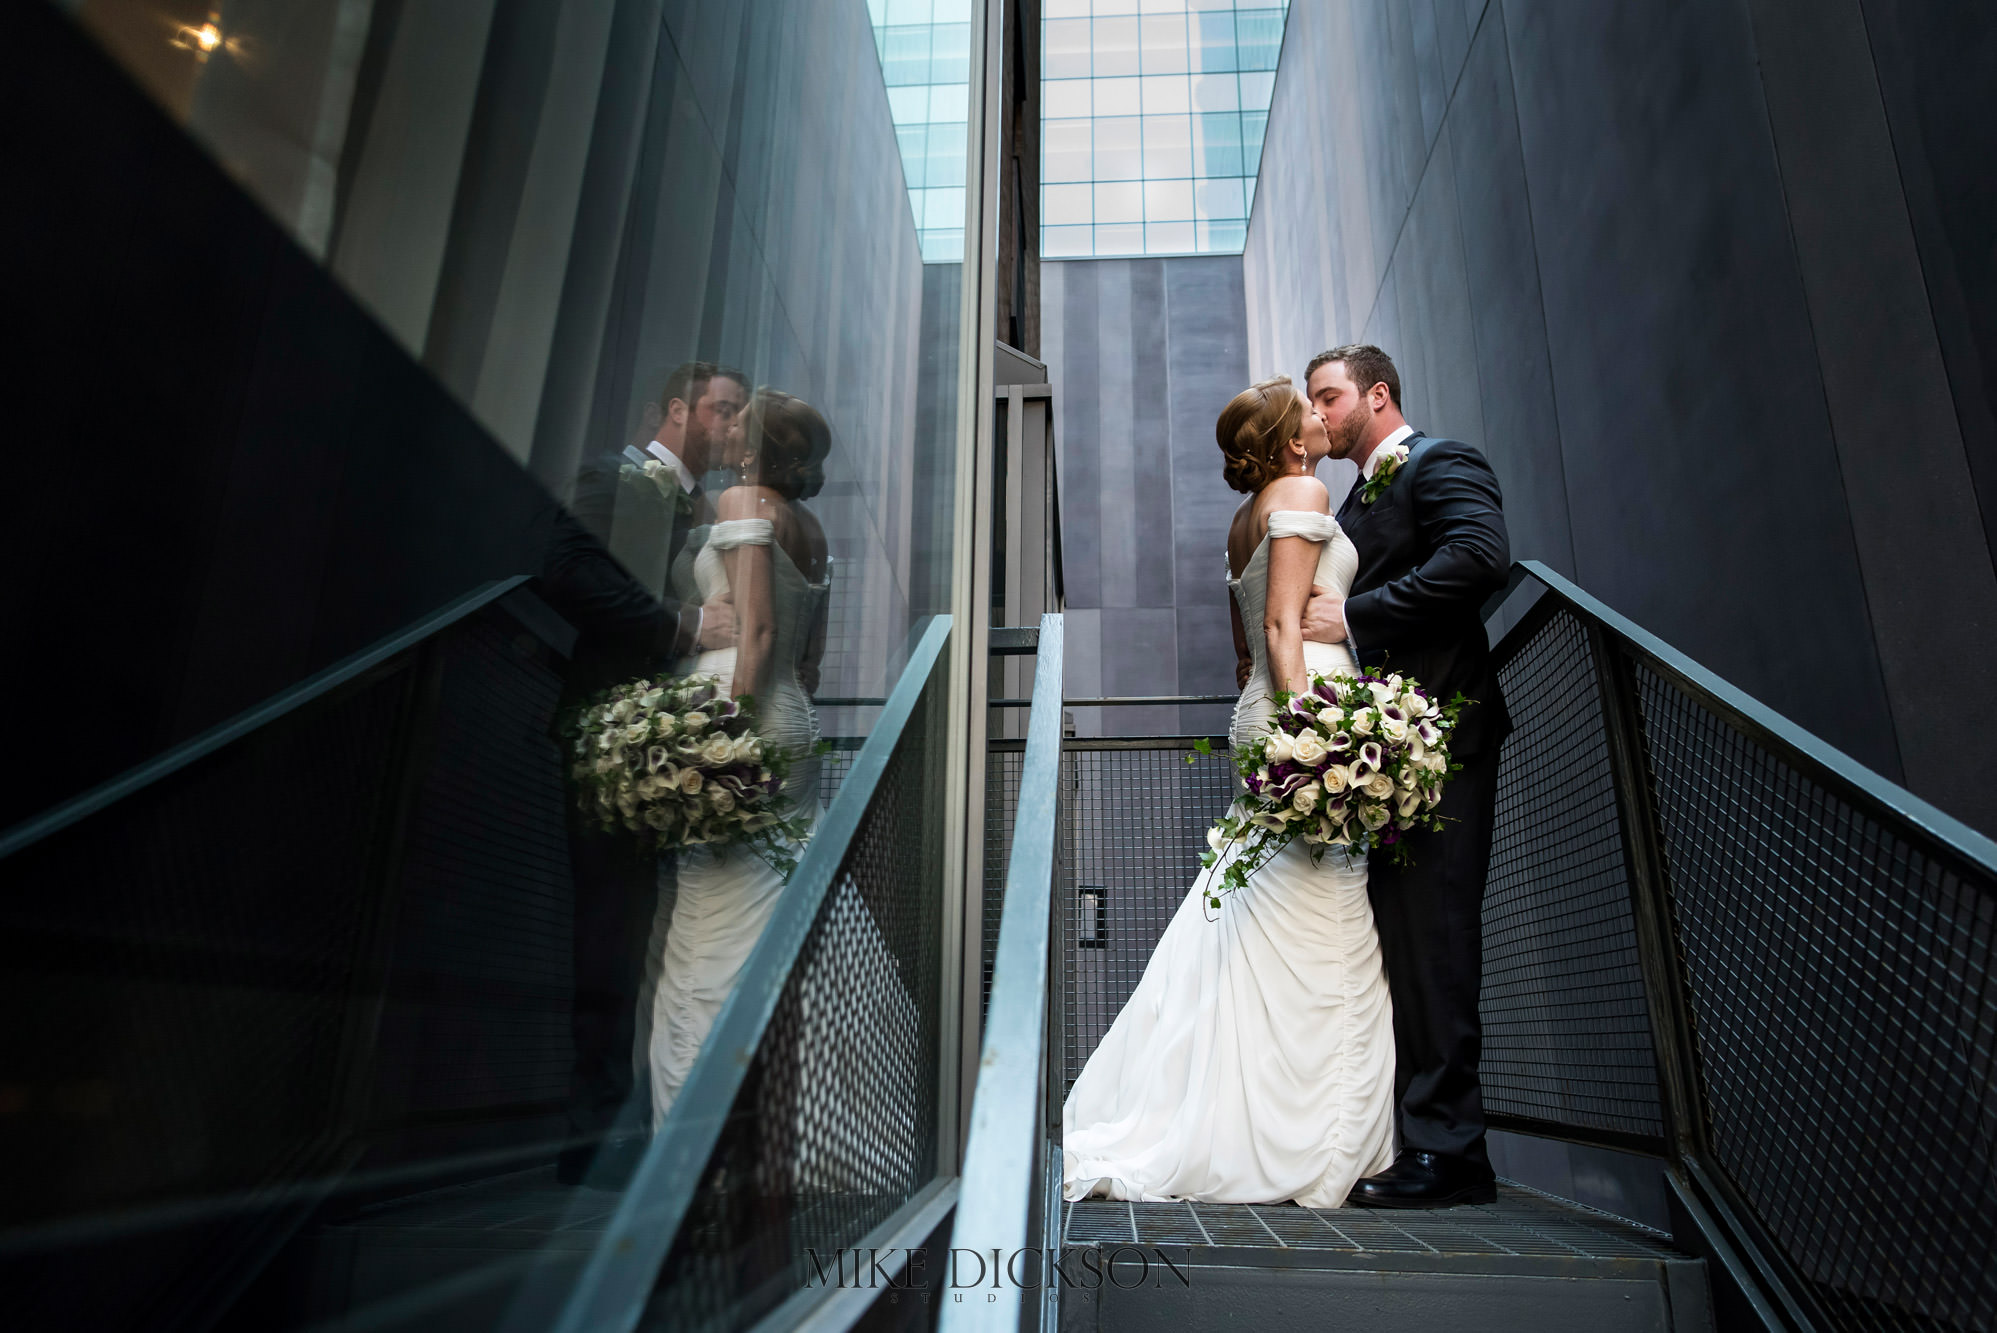 karen-francois-013-arc-the-hotel-ottawa-wedding-photographer-mike-dickson-081o-6412-md1